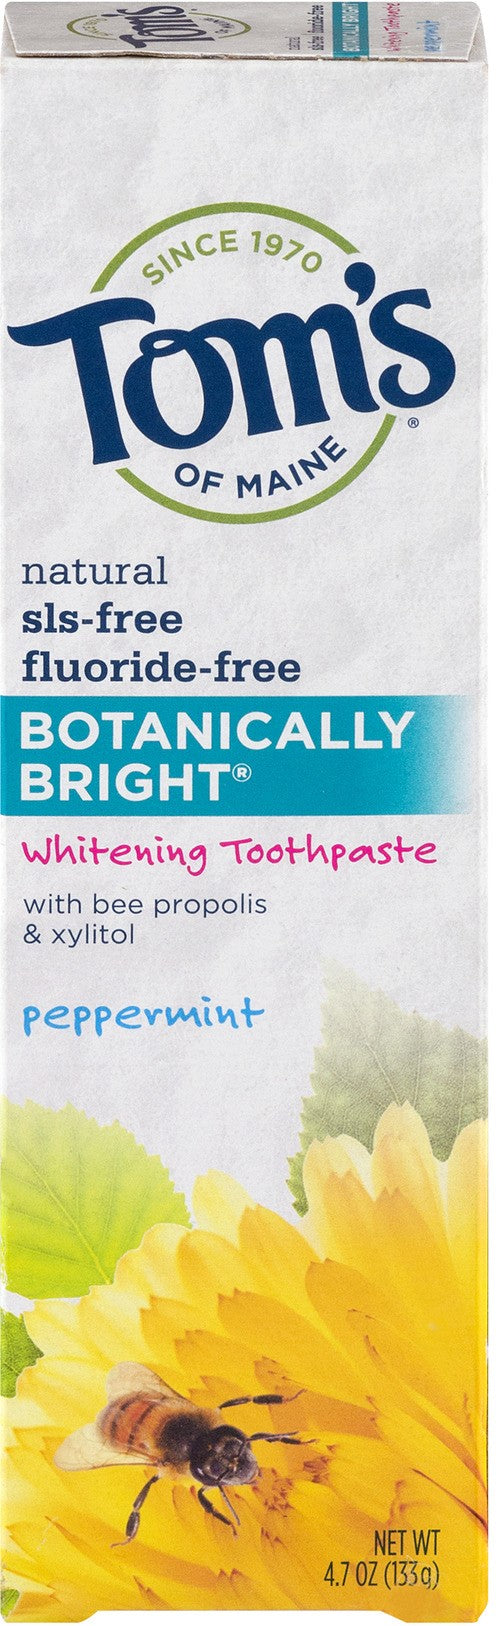 Toms Toothpaste Botanically Bright SLS Free, Fluoride Free, Peppermint 4.7oz